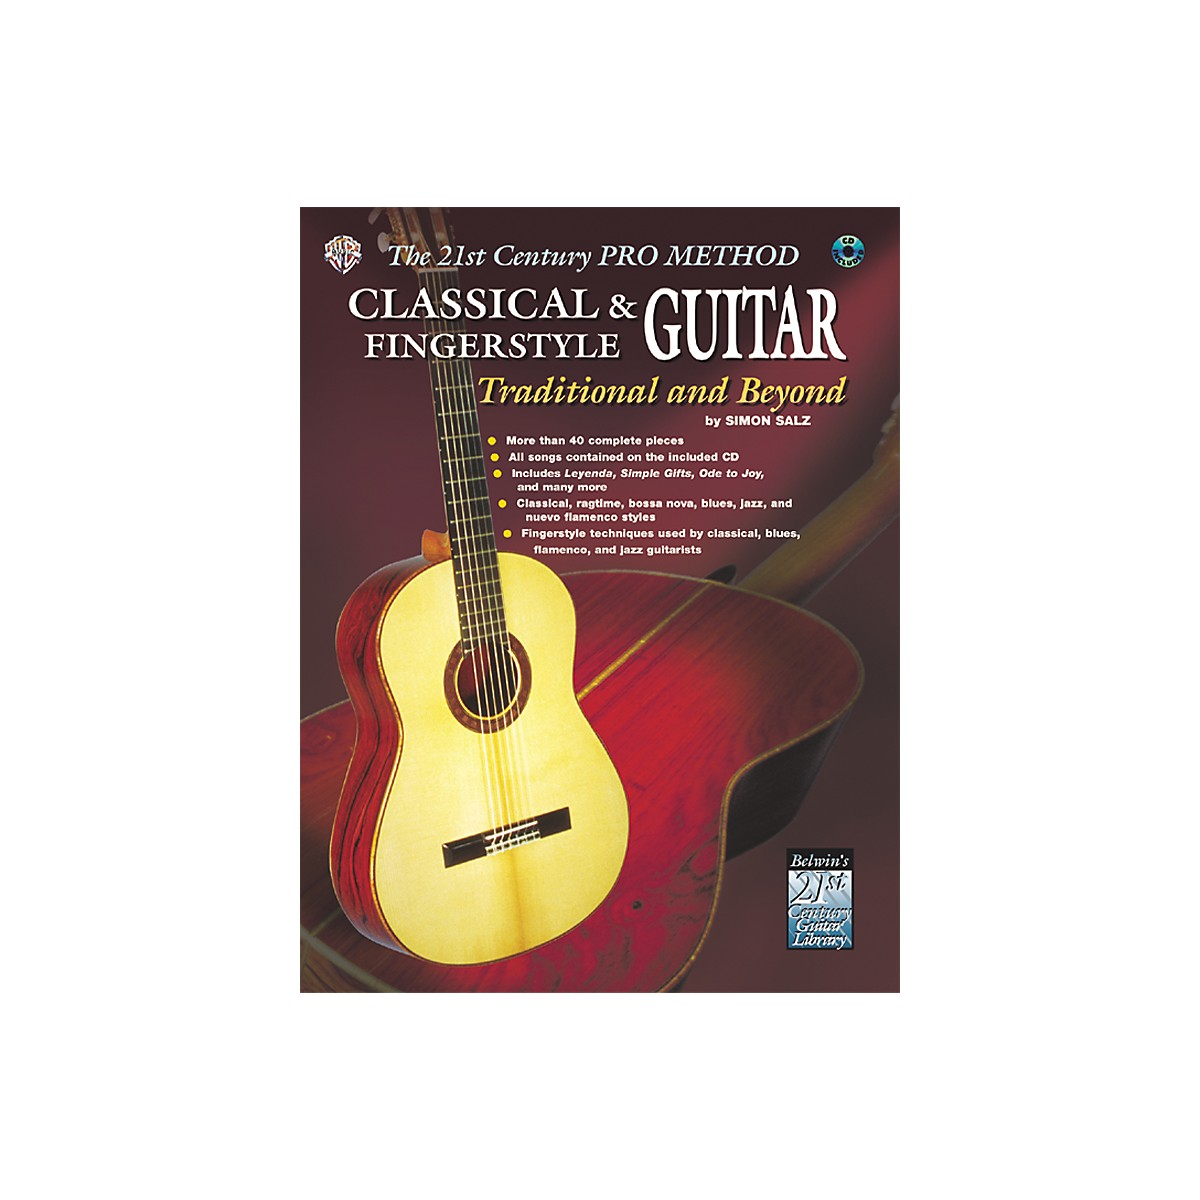 Alfred The 21st Century Pro Method: Classical & Fingerstyle Guitar Traditional & Beyond Book with CD